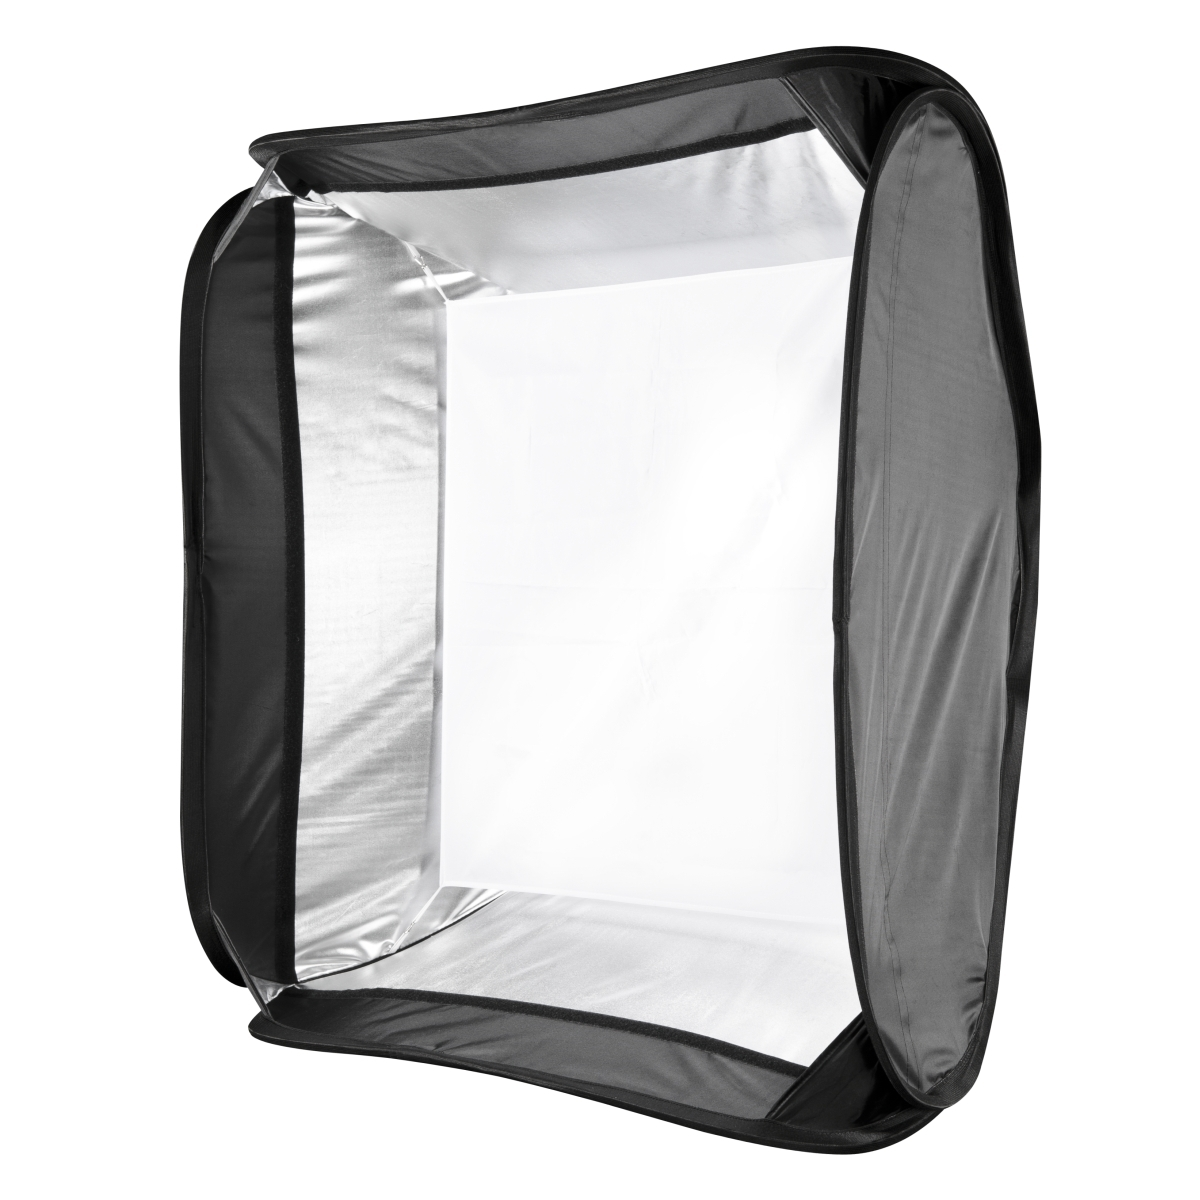 Walimex pro Magic Softbox 40x40cm für Systemblitz